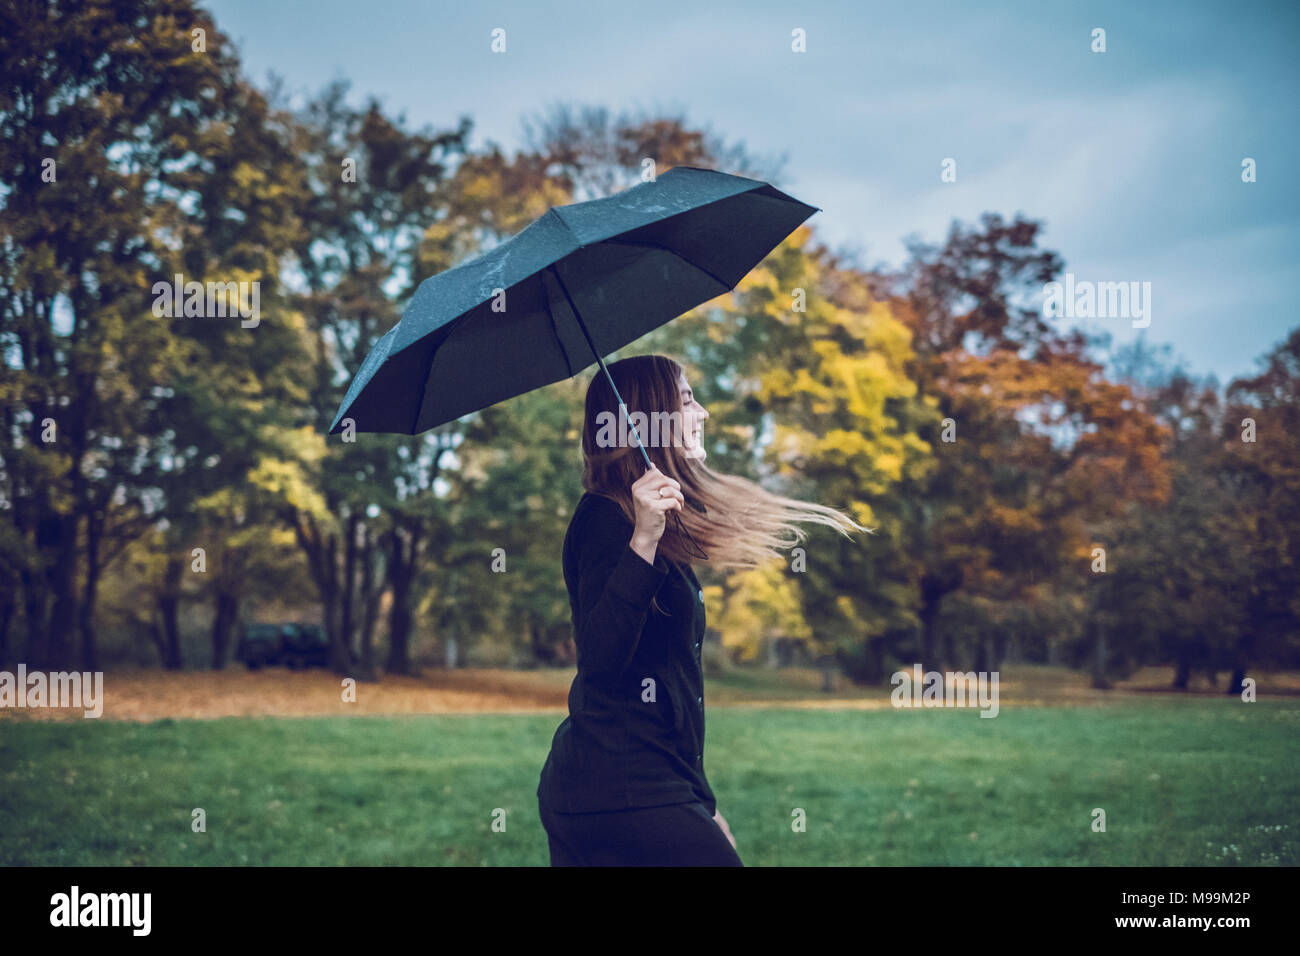 Happy young woman with umbrella walking in autumnal park - Stock Image